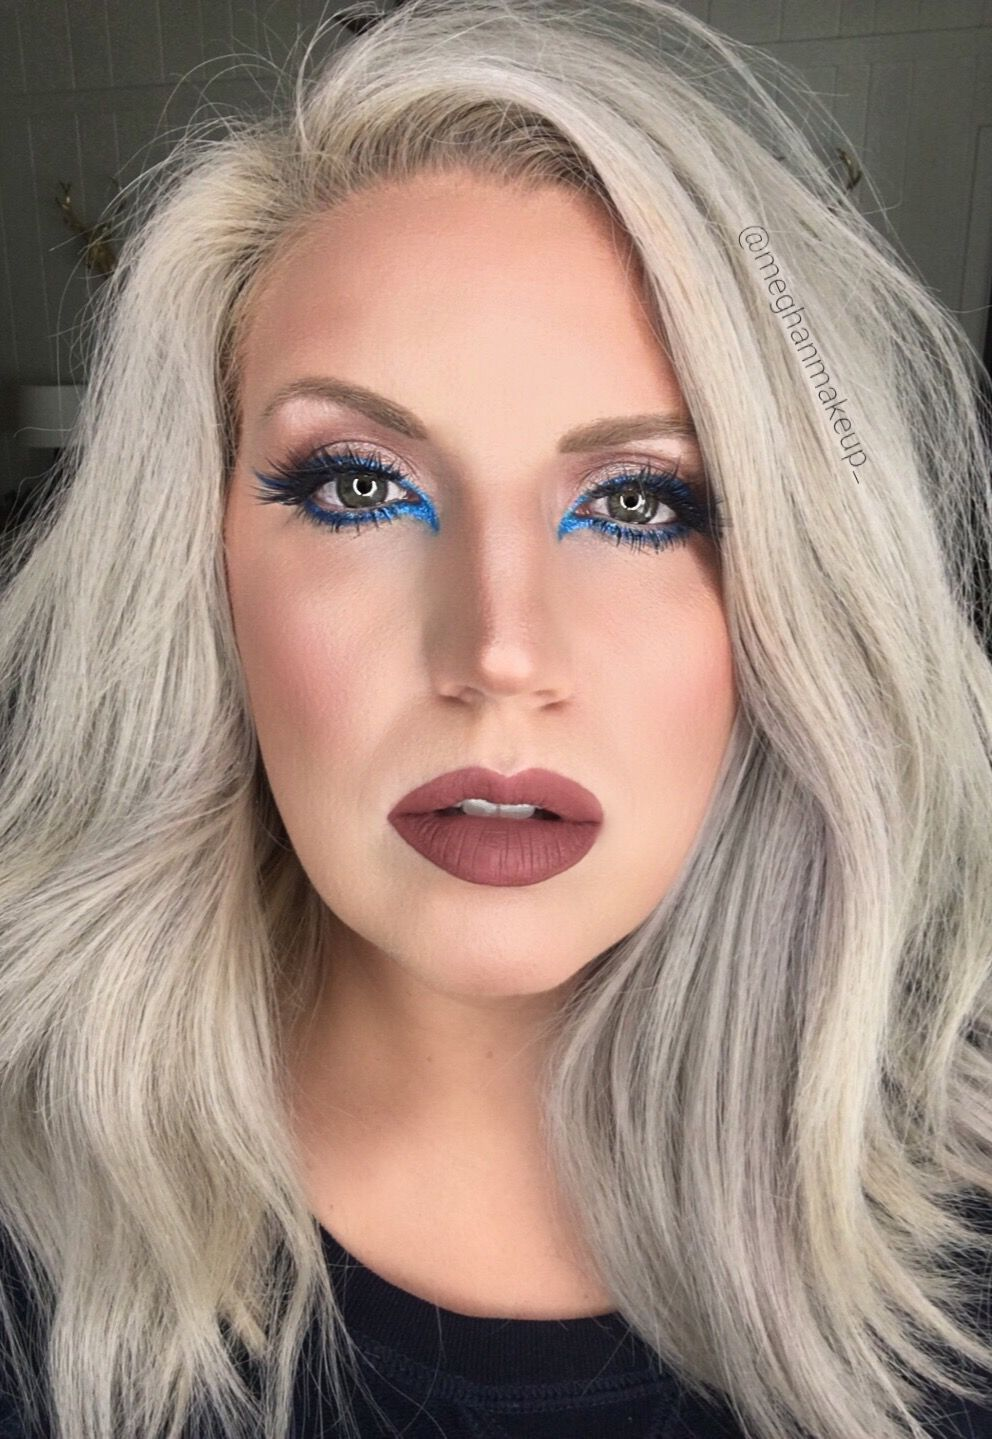 Neon blue eyeliner and brown lips. Love a pop of color